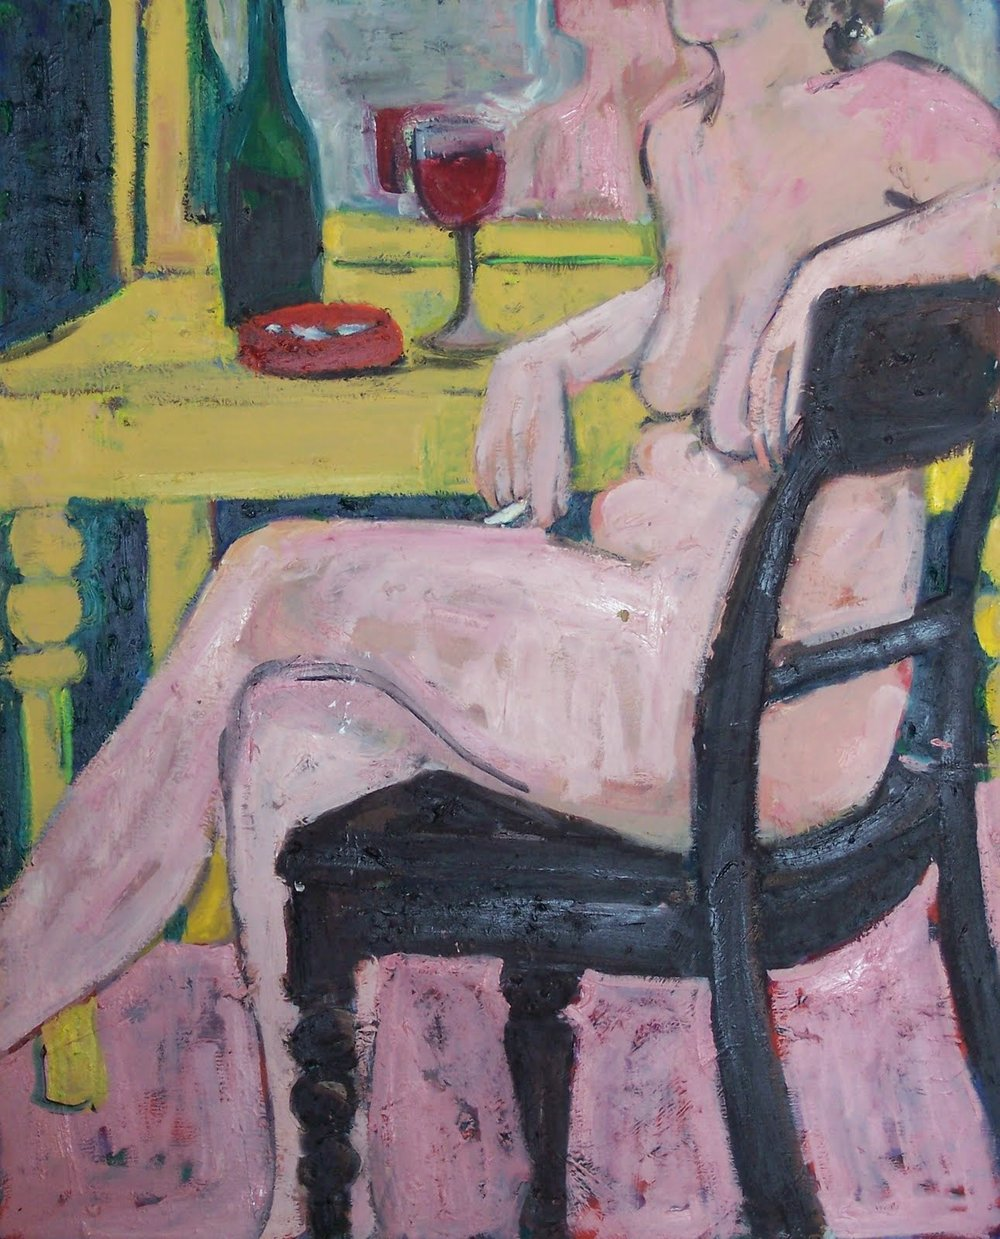 Nude Smoking (30 X 24)